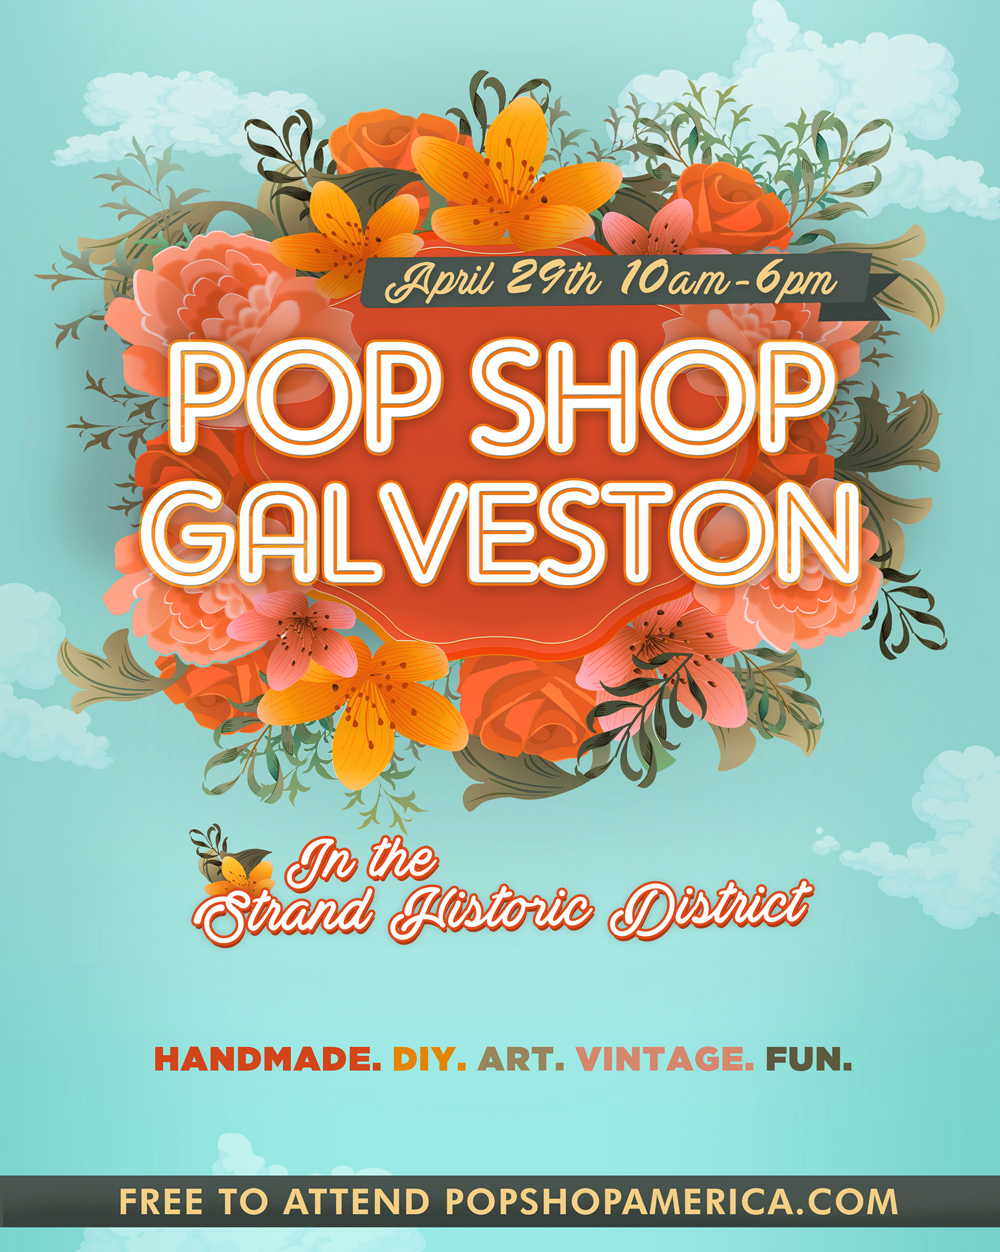 Popshop_Galvestion_ Handmade Shopping Craft Fair